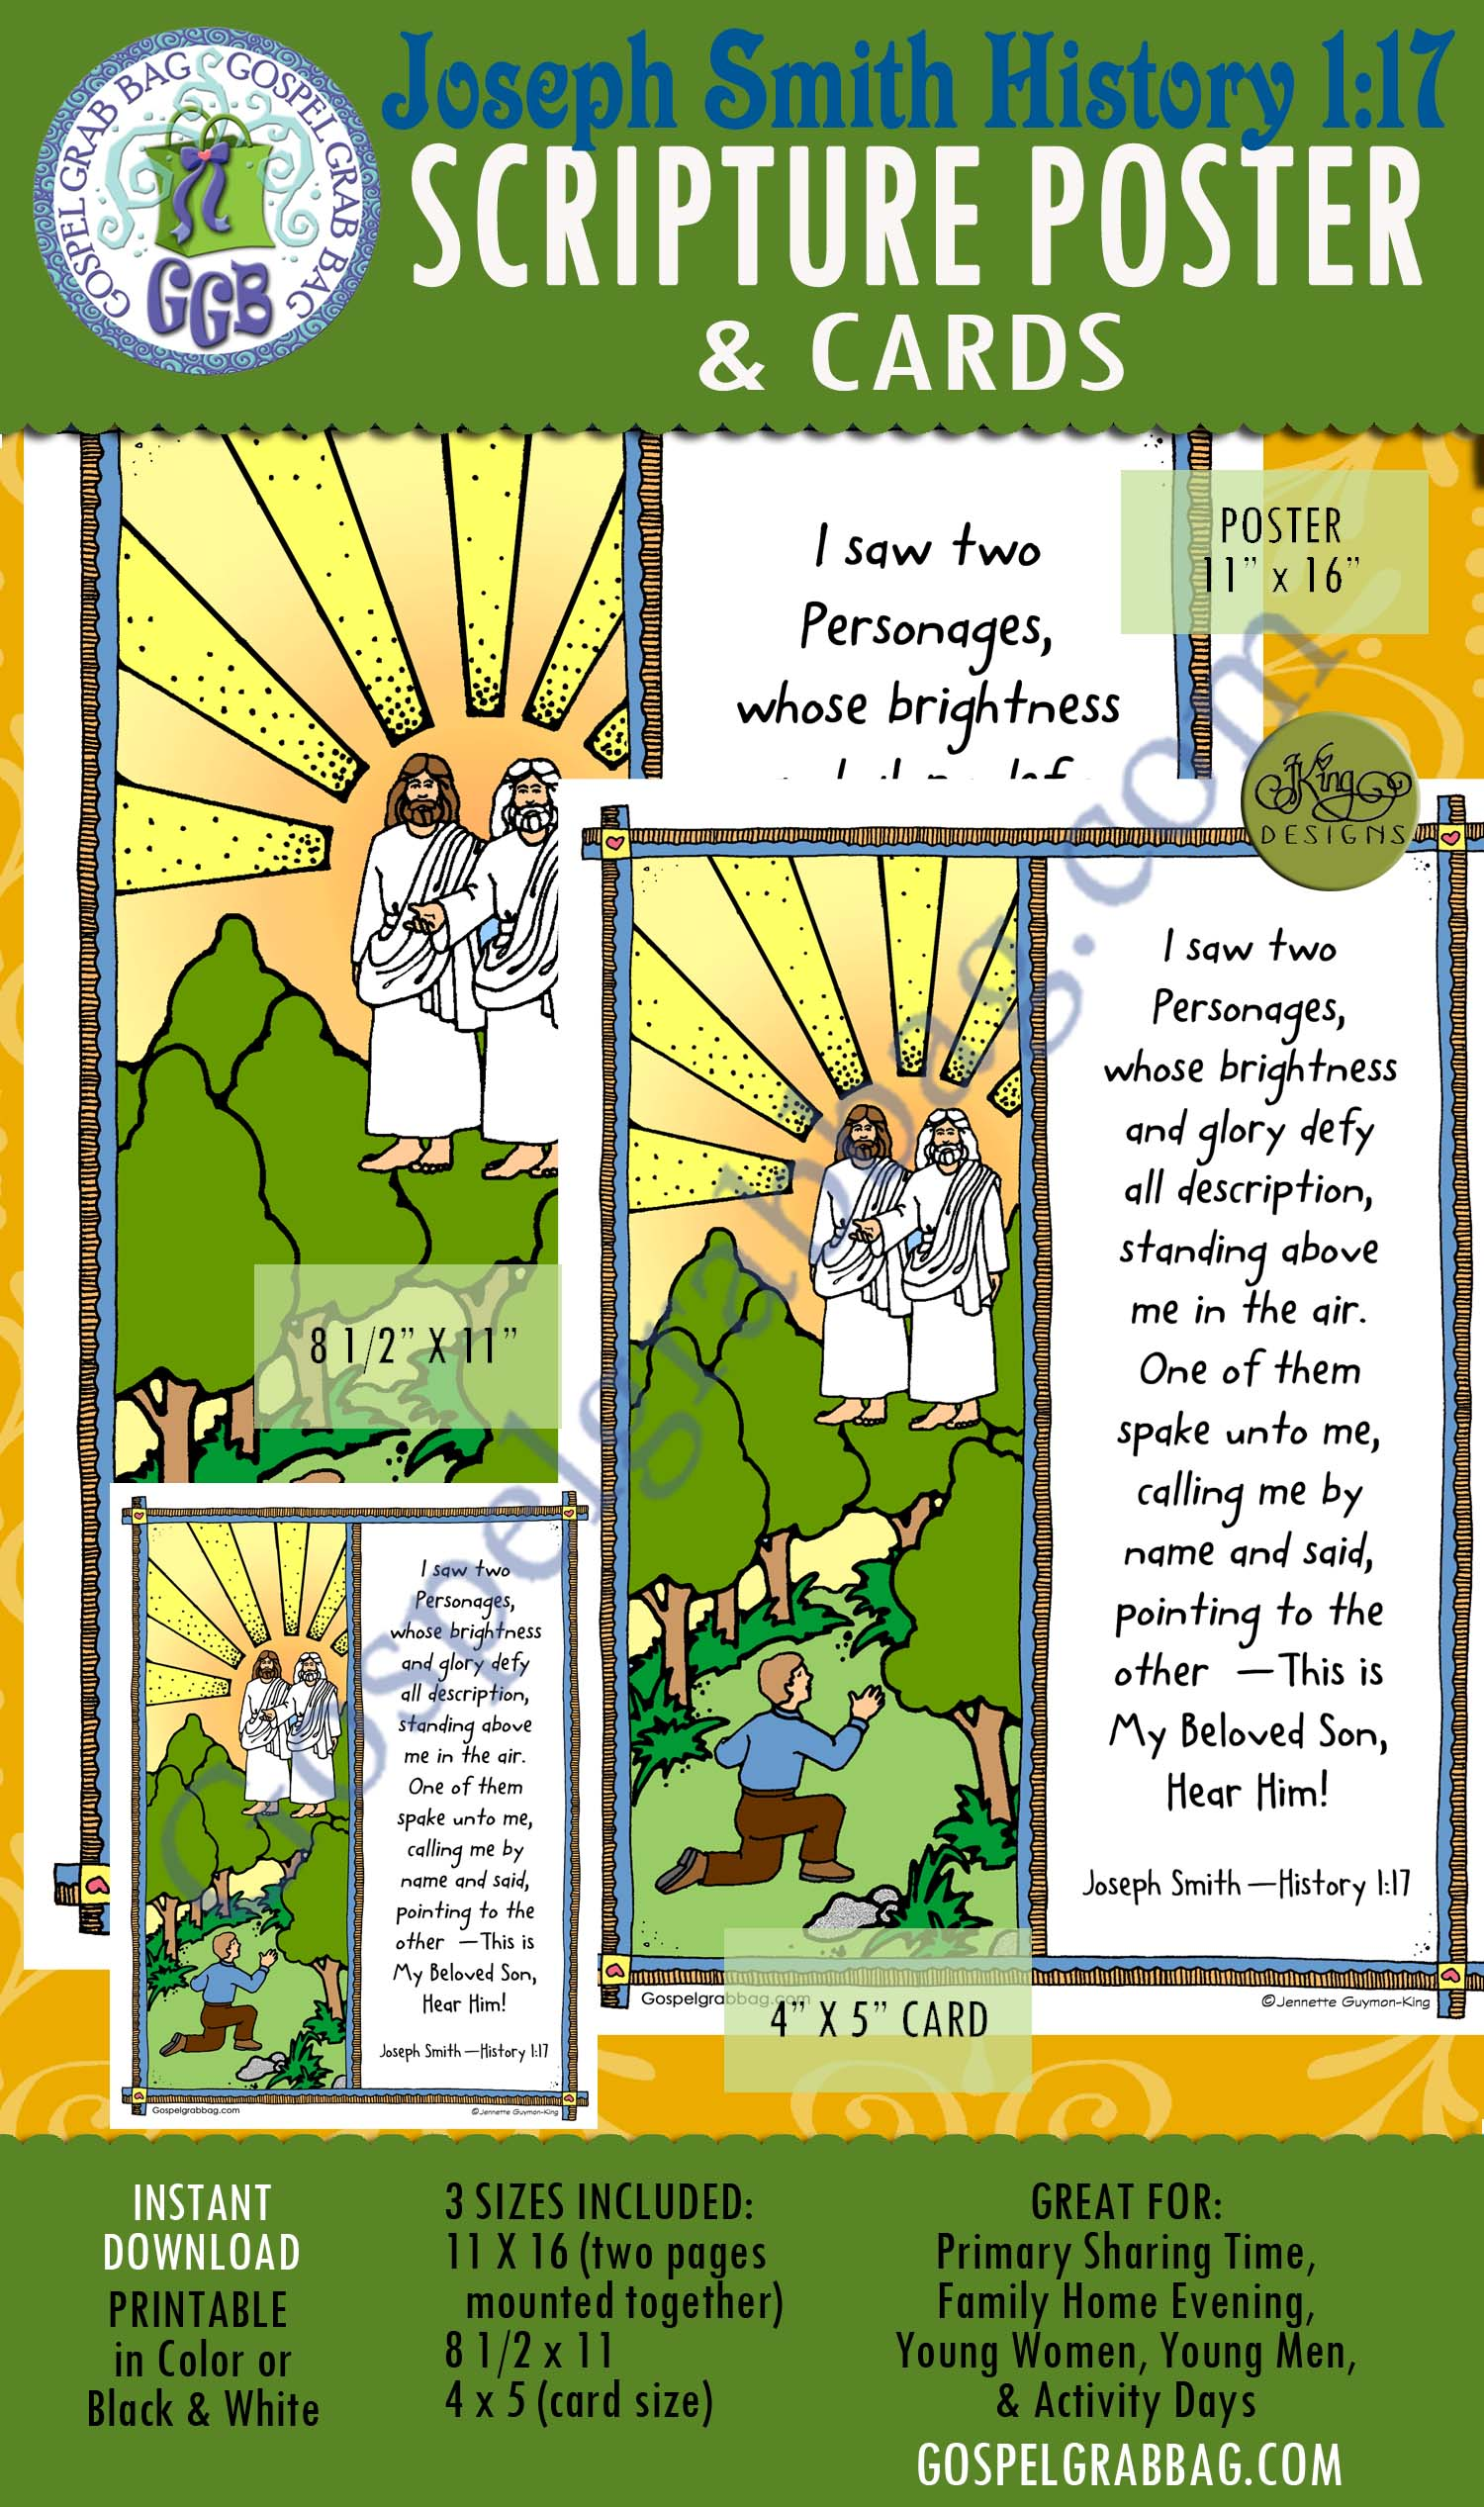 $2.00 JSH 1.17 - Joseph Smith History 1:17 SCRIPTURE POSTERs and cards, GospelGrabBag.com